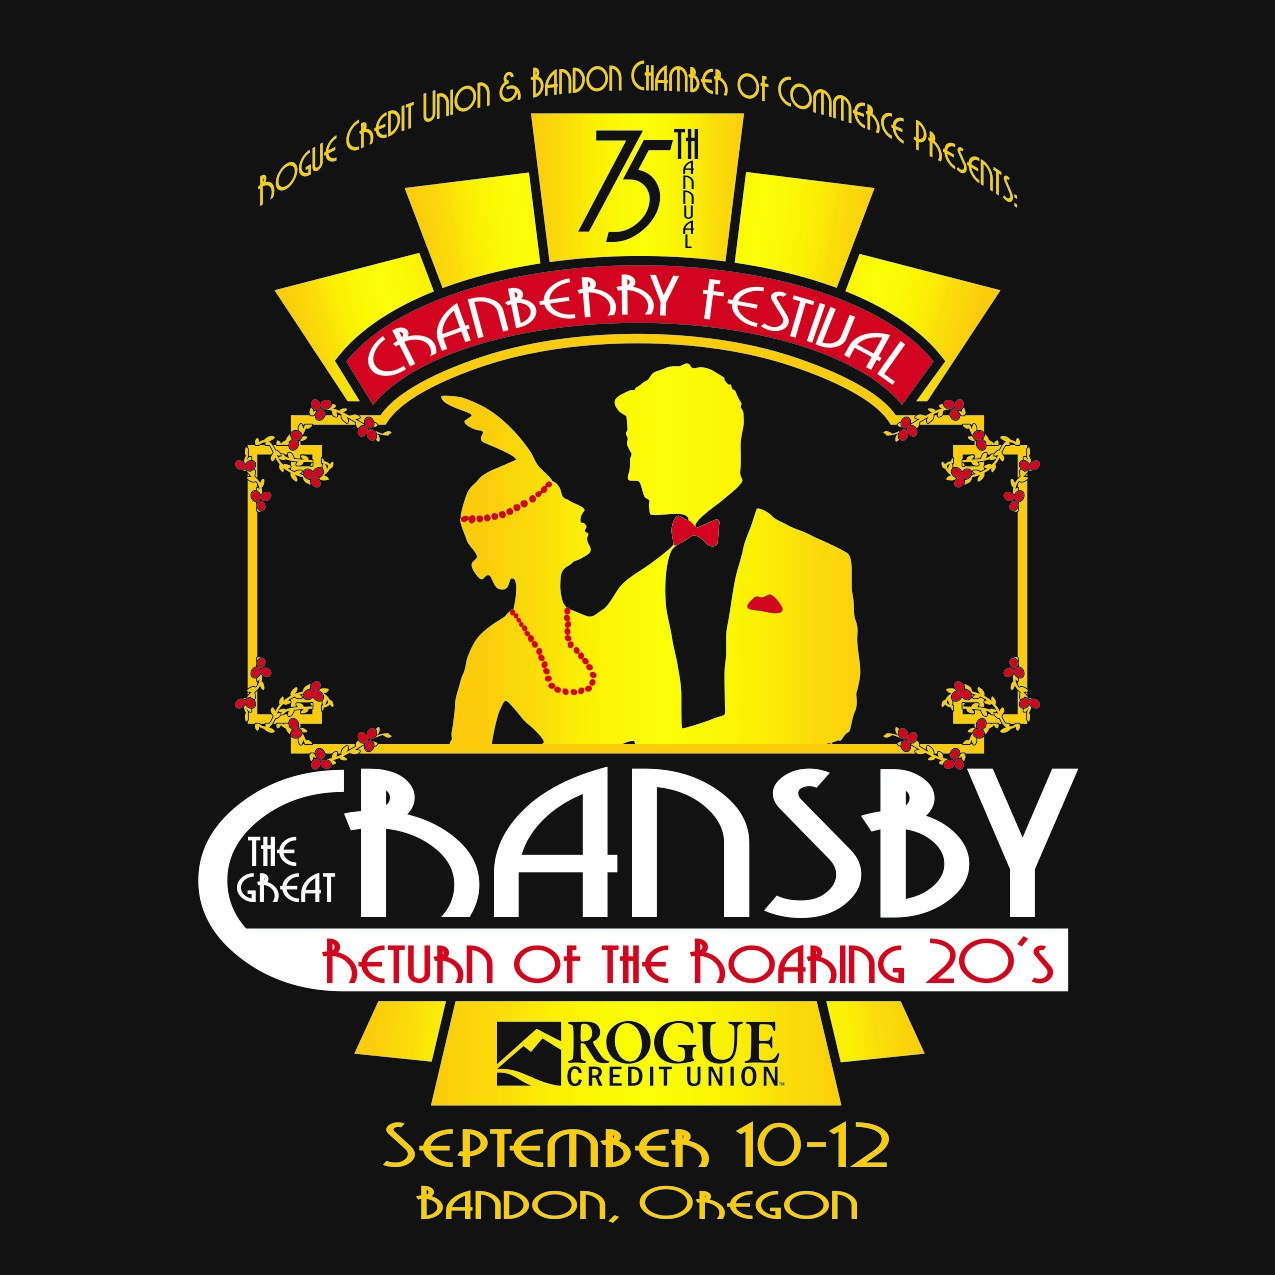 75th Annual Cranberry Festival - The Great Cransby, Return of the Roaring 20's